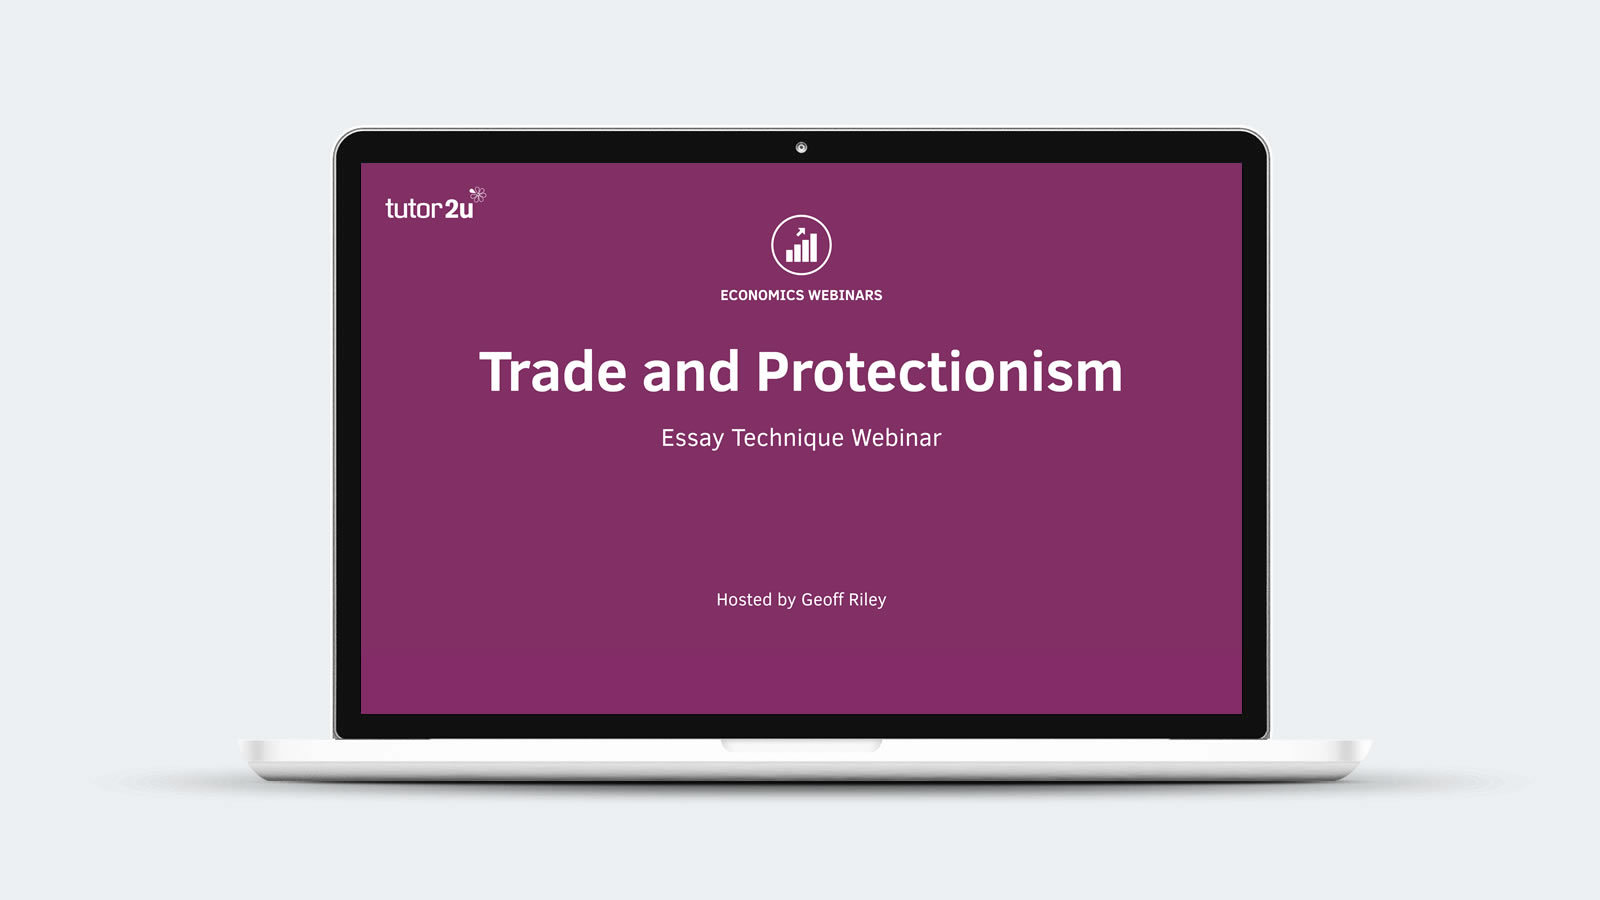 events for teachers and students economics essential economics essay technique webinar trade and protectionism